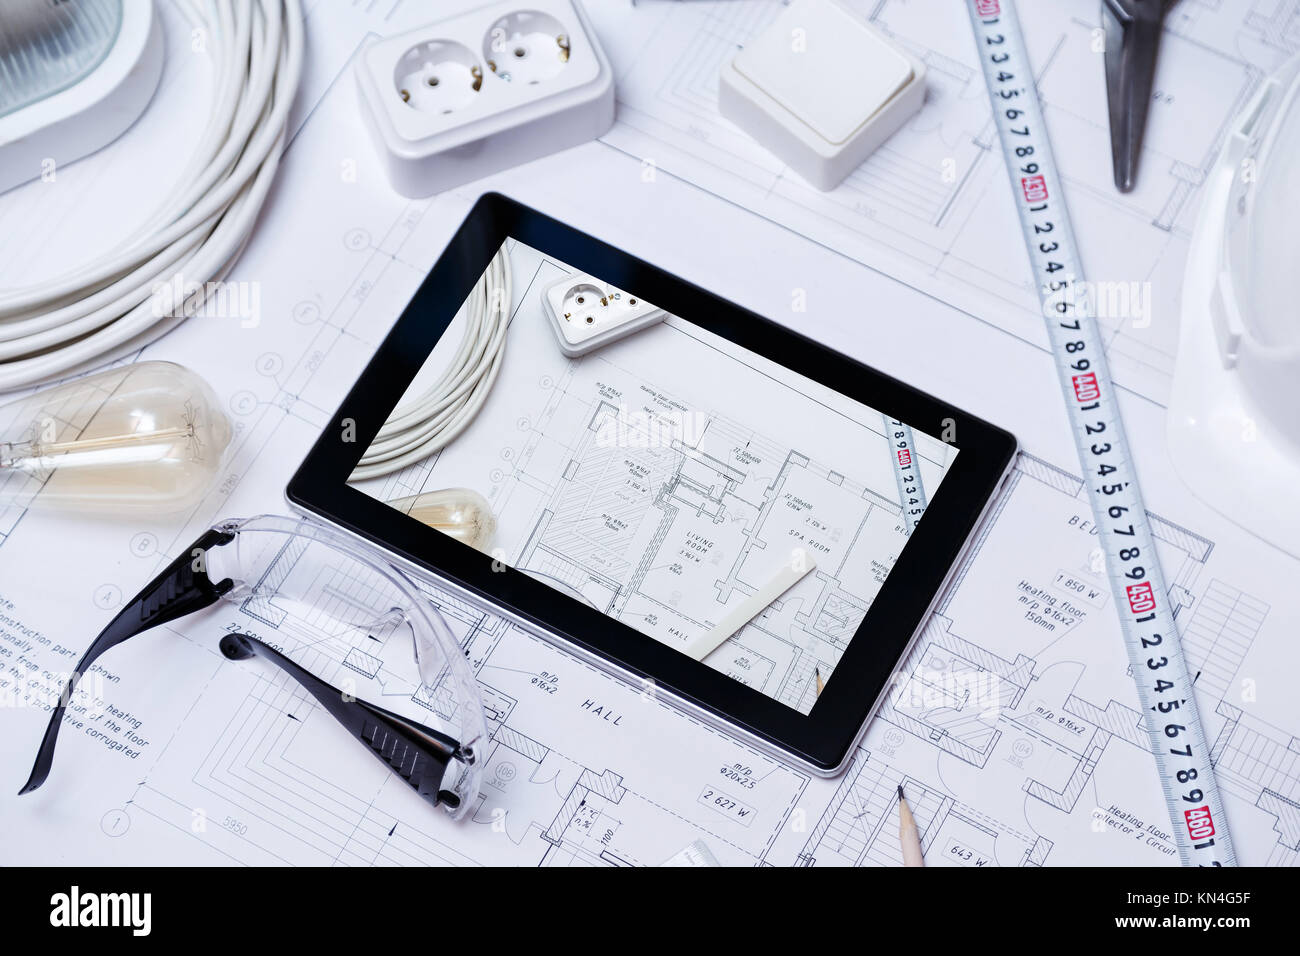 Construction drawing with tools and tablet - Stock Image